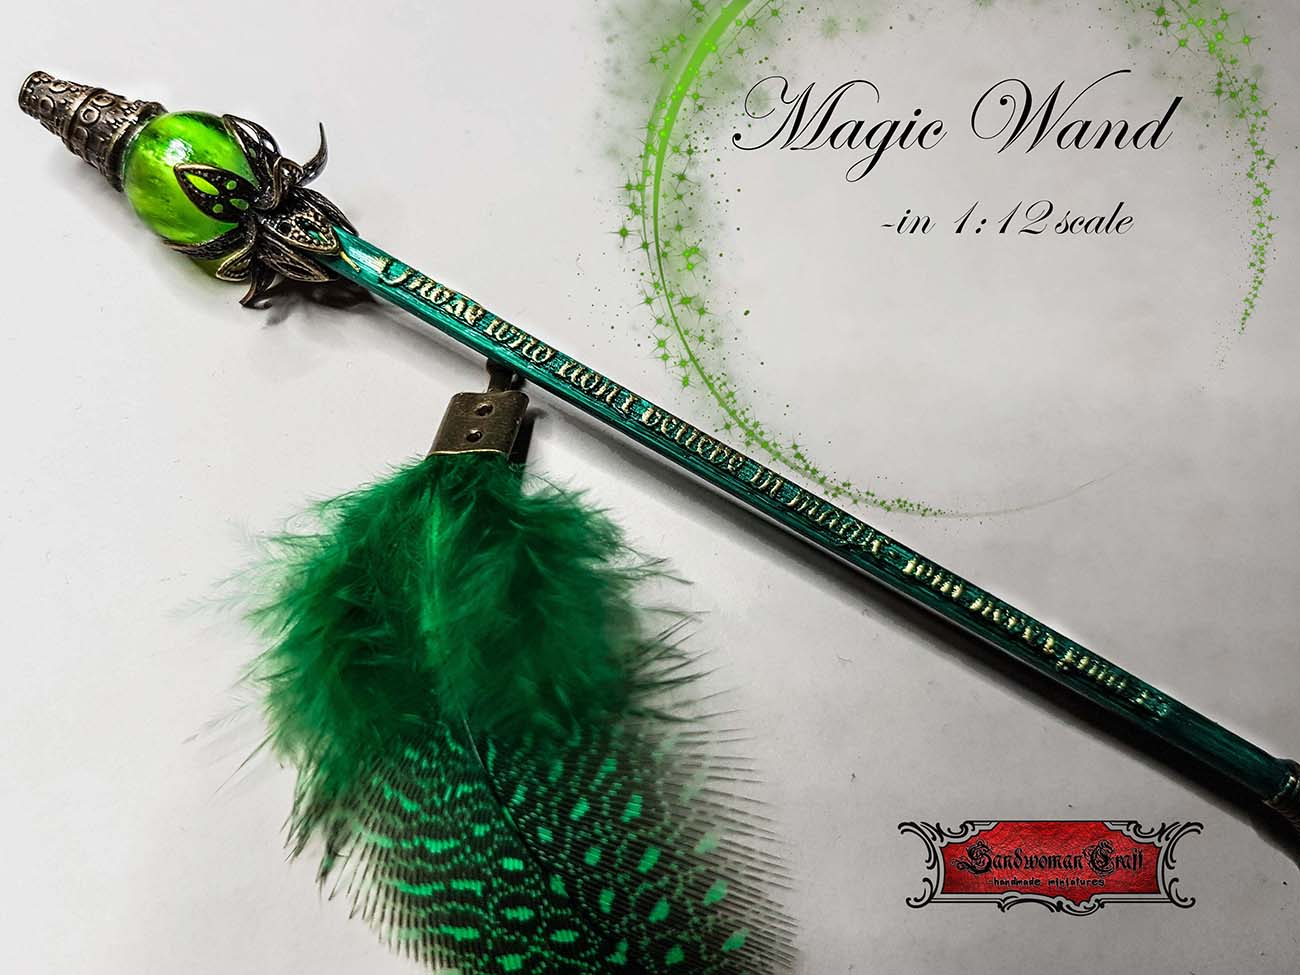 Miniature magic wand